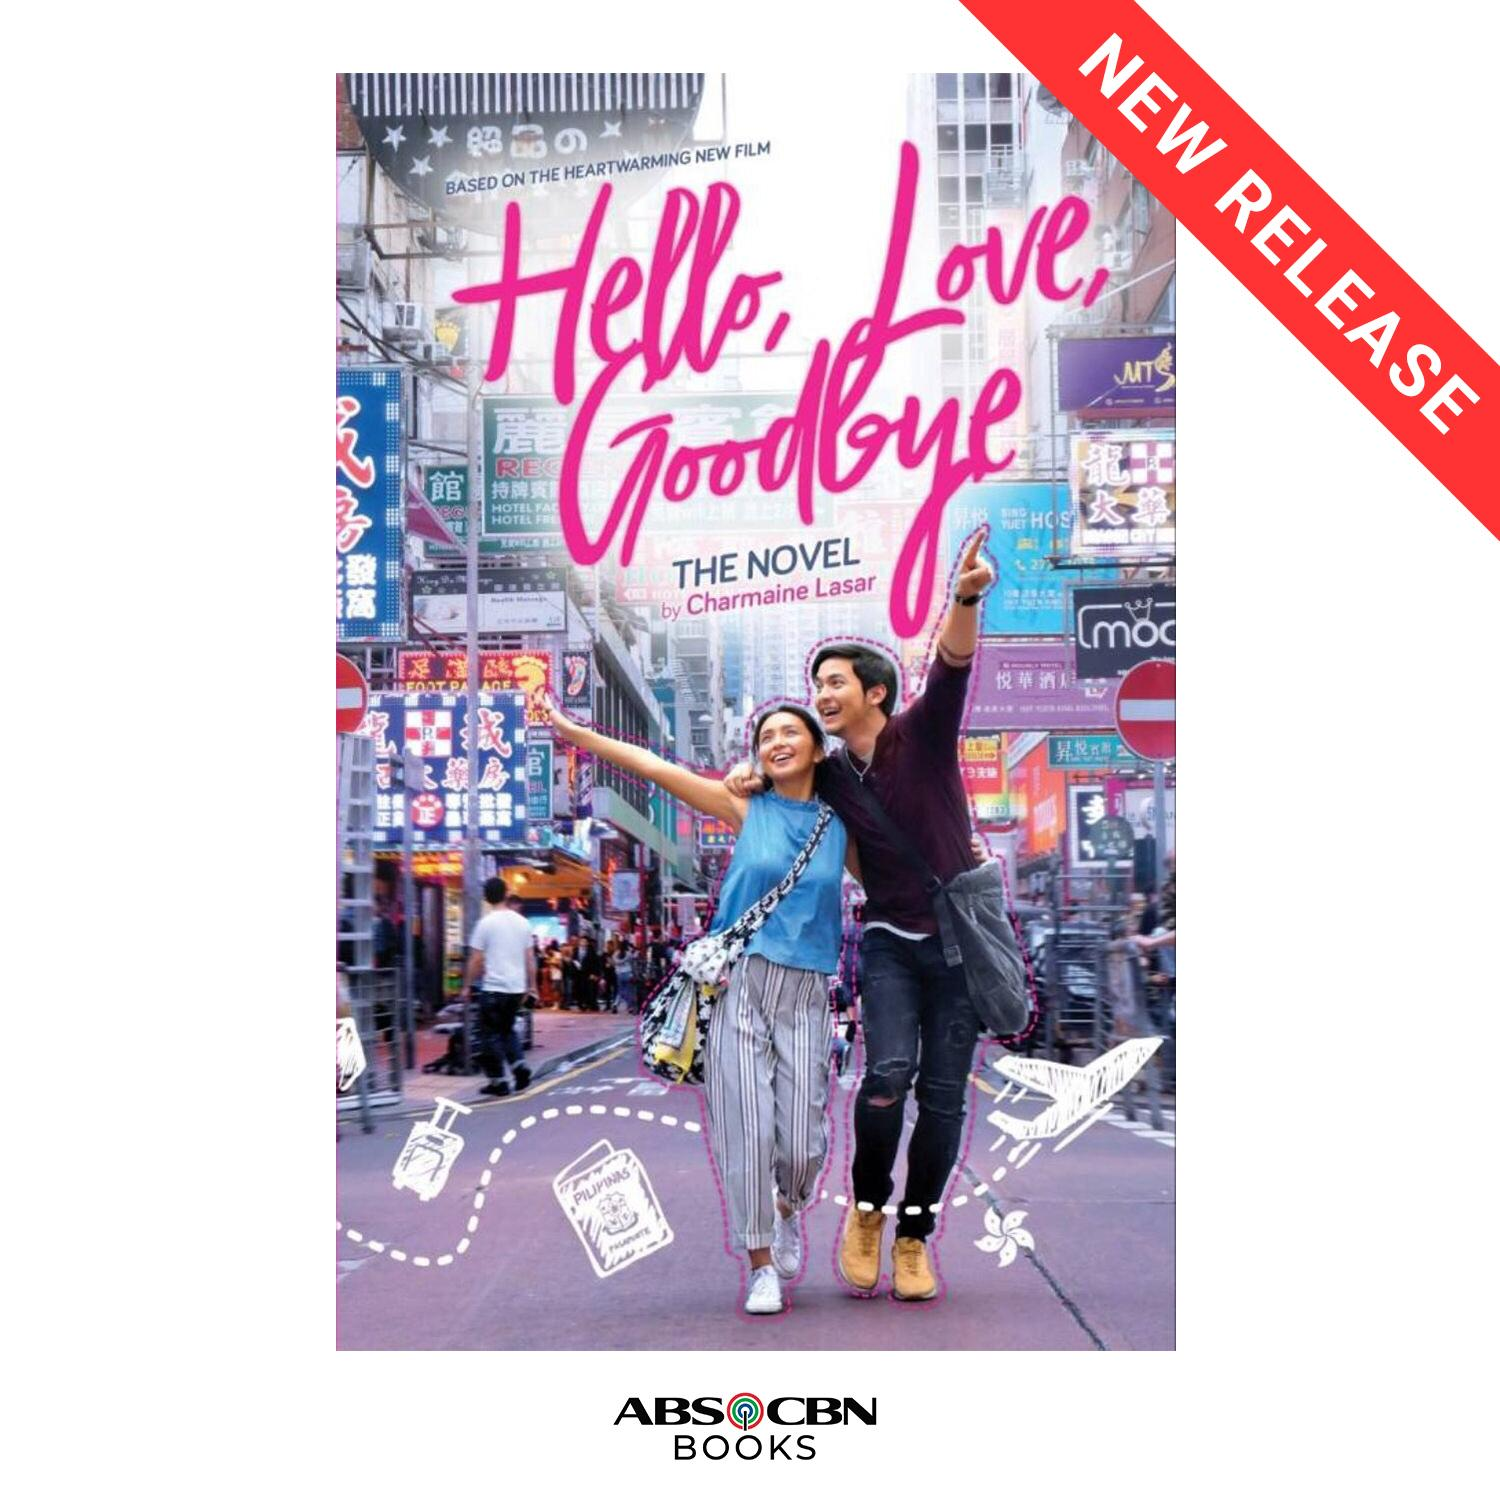 HELLO, LOVE, GOODBYE THE NOVEL by Charmaine Lasar